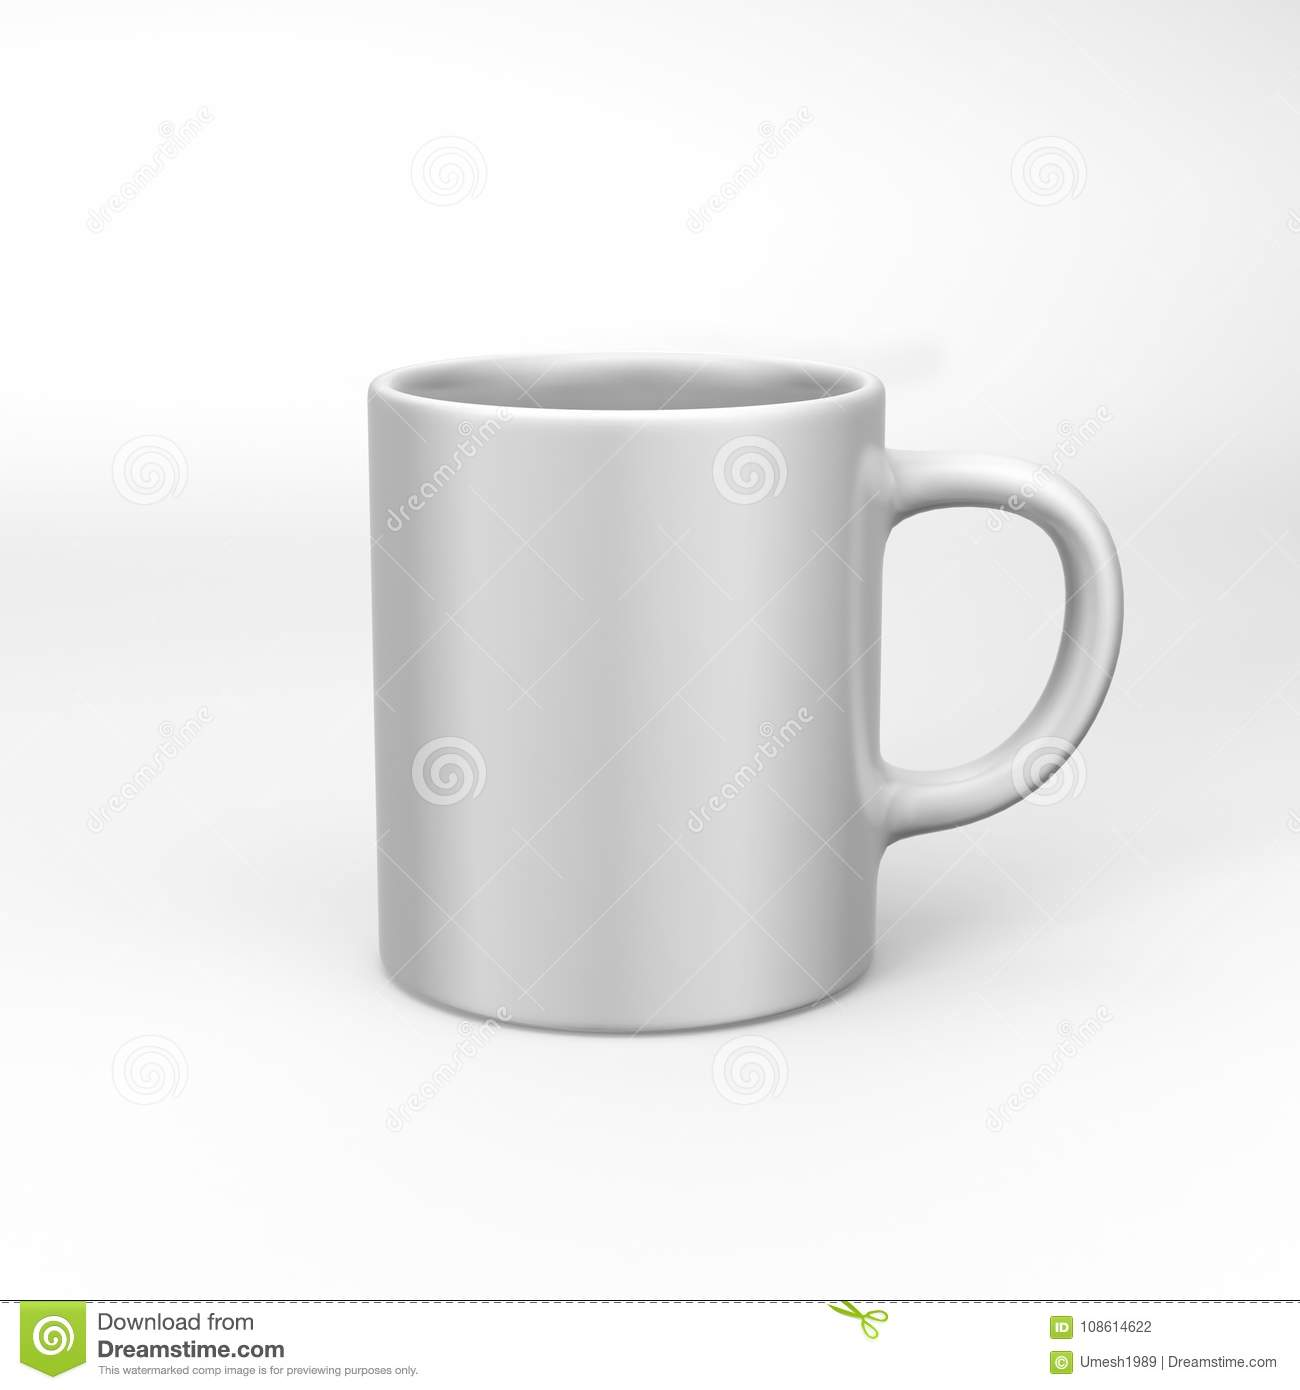 Realistic Blank Ceramic White Coffee Cup And Mug Isolated On White ...